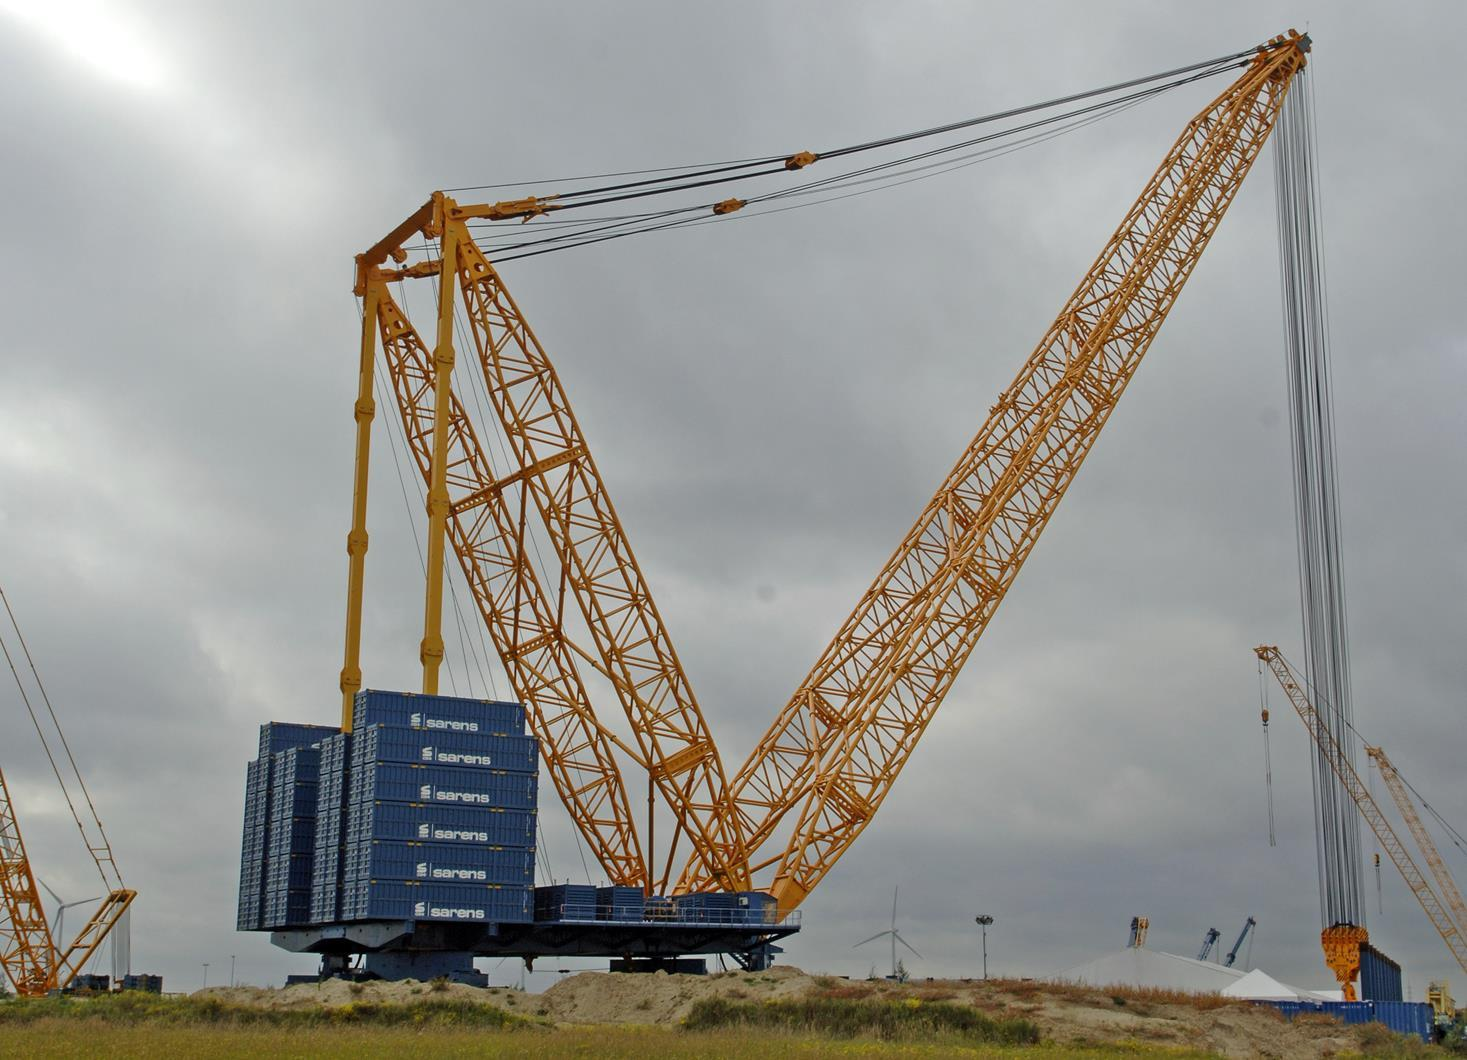 Take A Look At Those Counterweights!